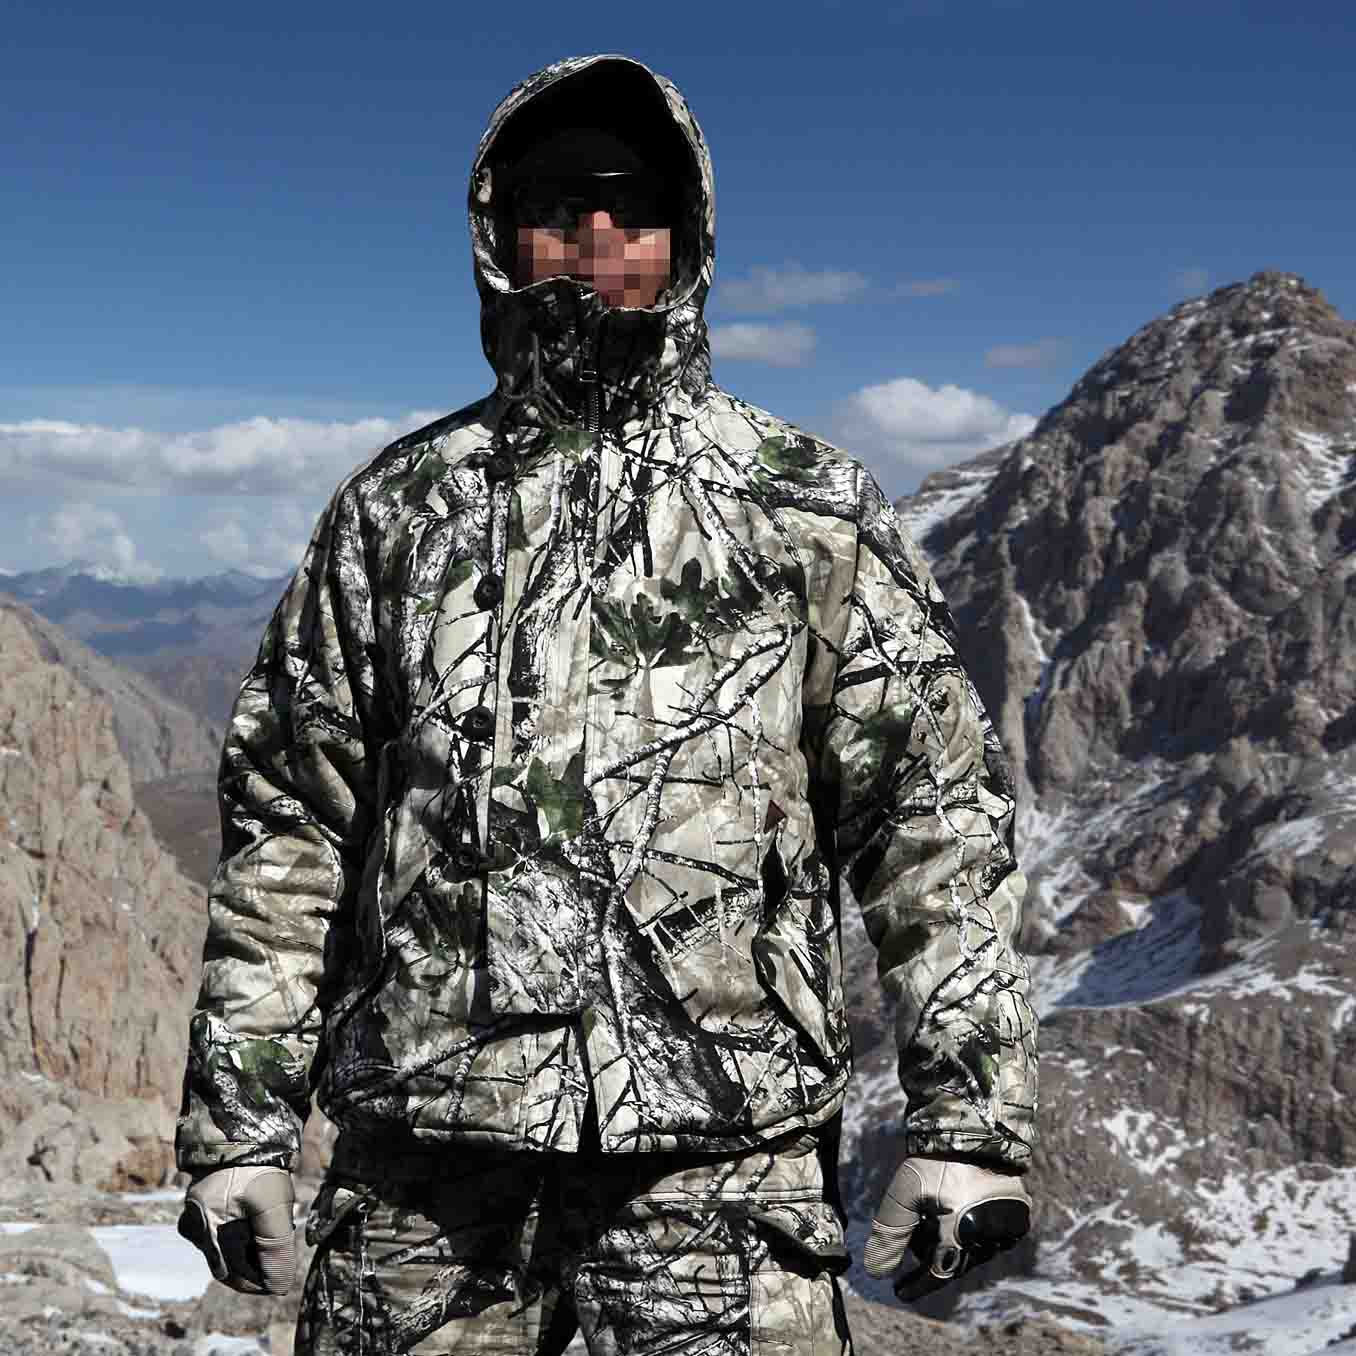 New Bionic Camouflage Winter Lighweight Field Coat with Liner Camo Parkas for Hunting and Outdoor рисуем сами 404 забавных рисунка